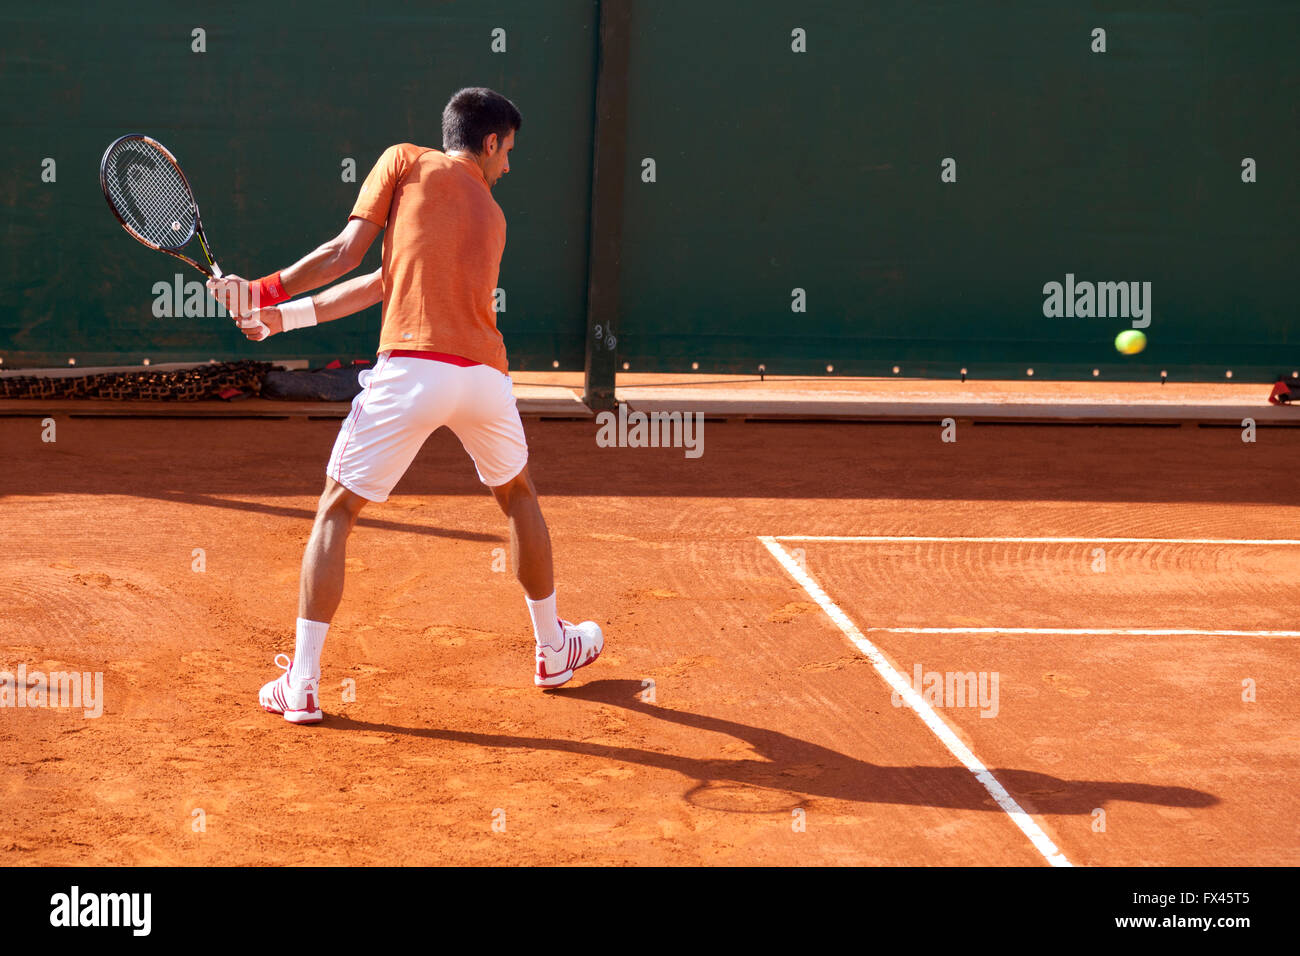 Monte Carlo Rolex Masters ATP, Monaco. Novac Djokovic training on court - Stock Image